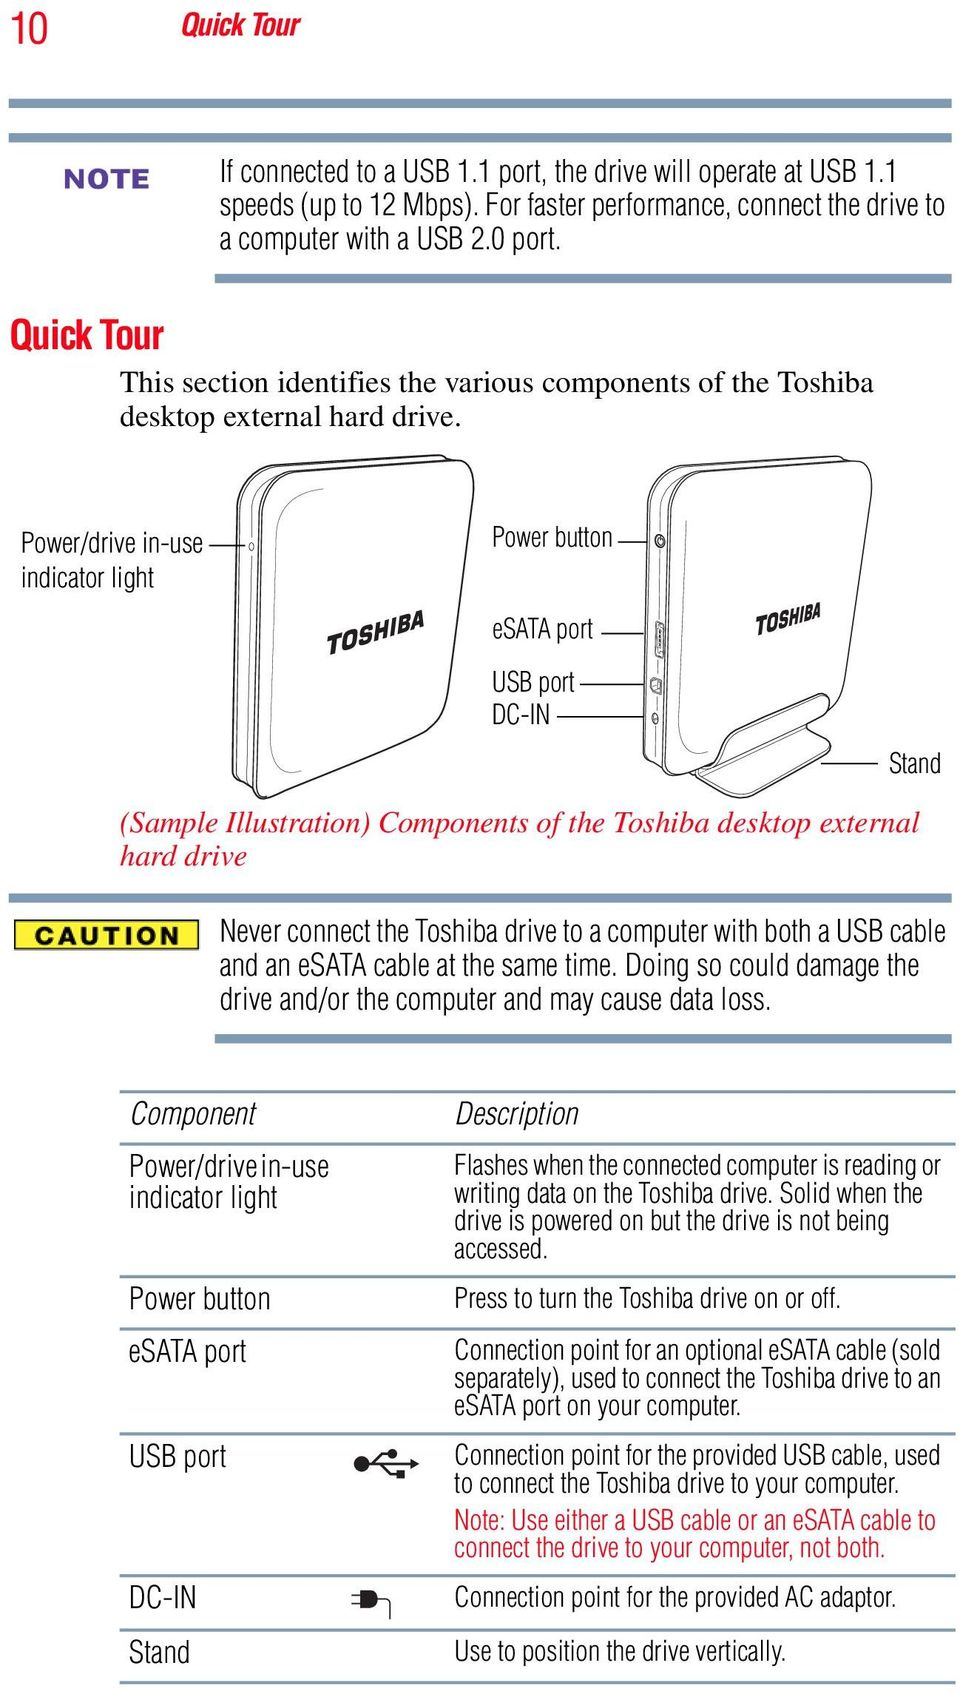 Power/drive in-use indicator light Power button esata port USB port DC-IN Stand (Sample Illustration) Components of the Toshiba desktop external hard drive Never connect the Toshiba drive to a